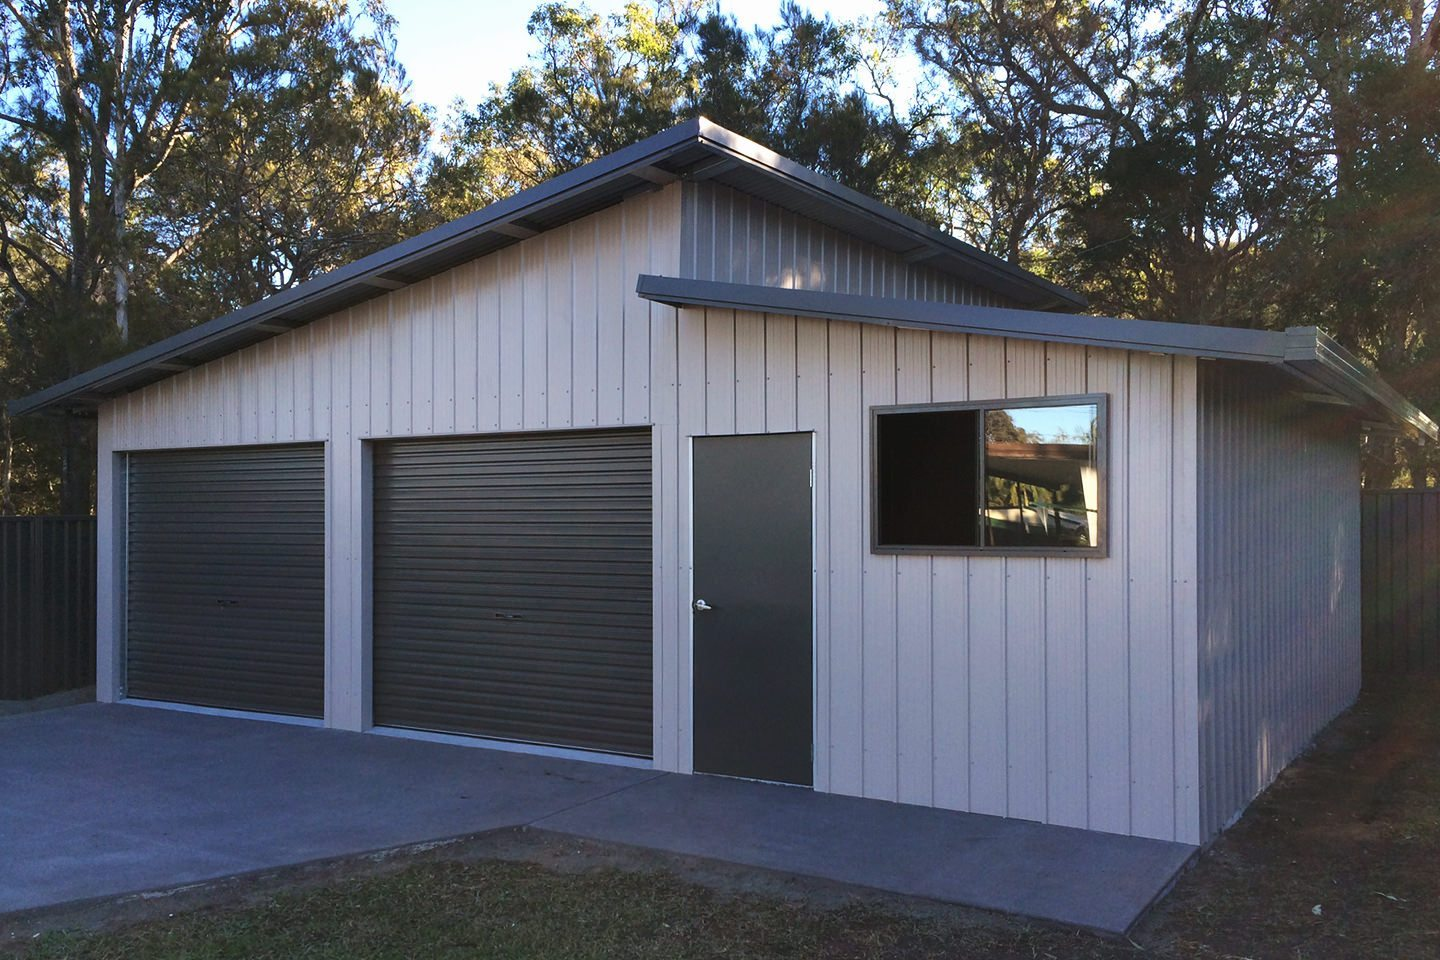 Design Schuur Skillion Roof Sheds And Garages Ranbuild